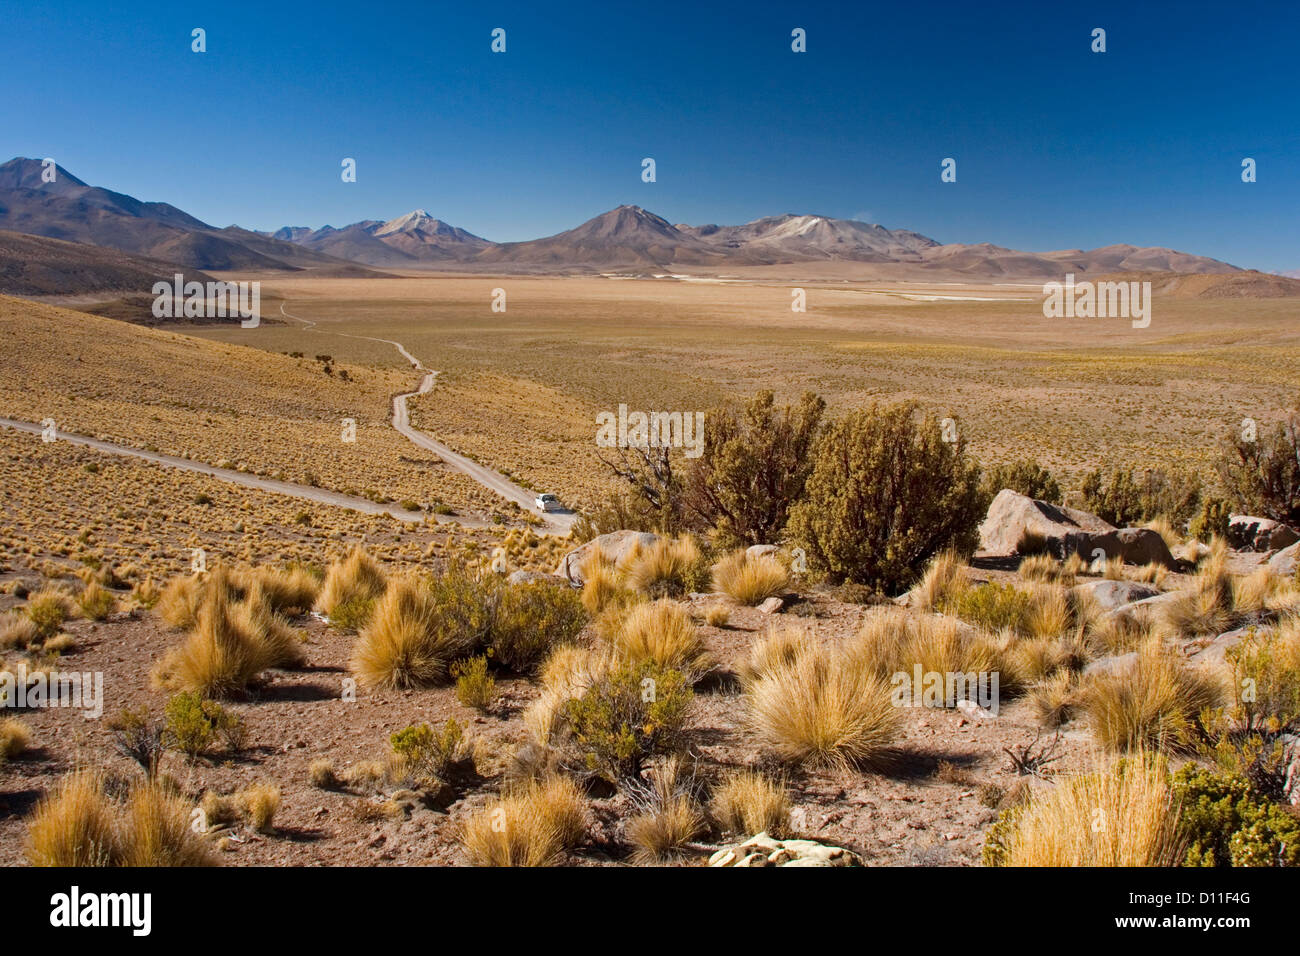 Vast desert landscape in Andes mountains at Volcan Isluga National Park with car on road far below leading to distant - Stock Image